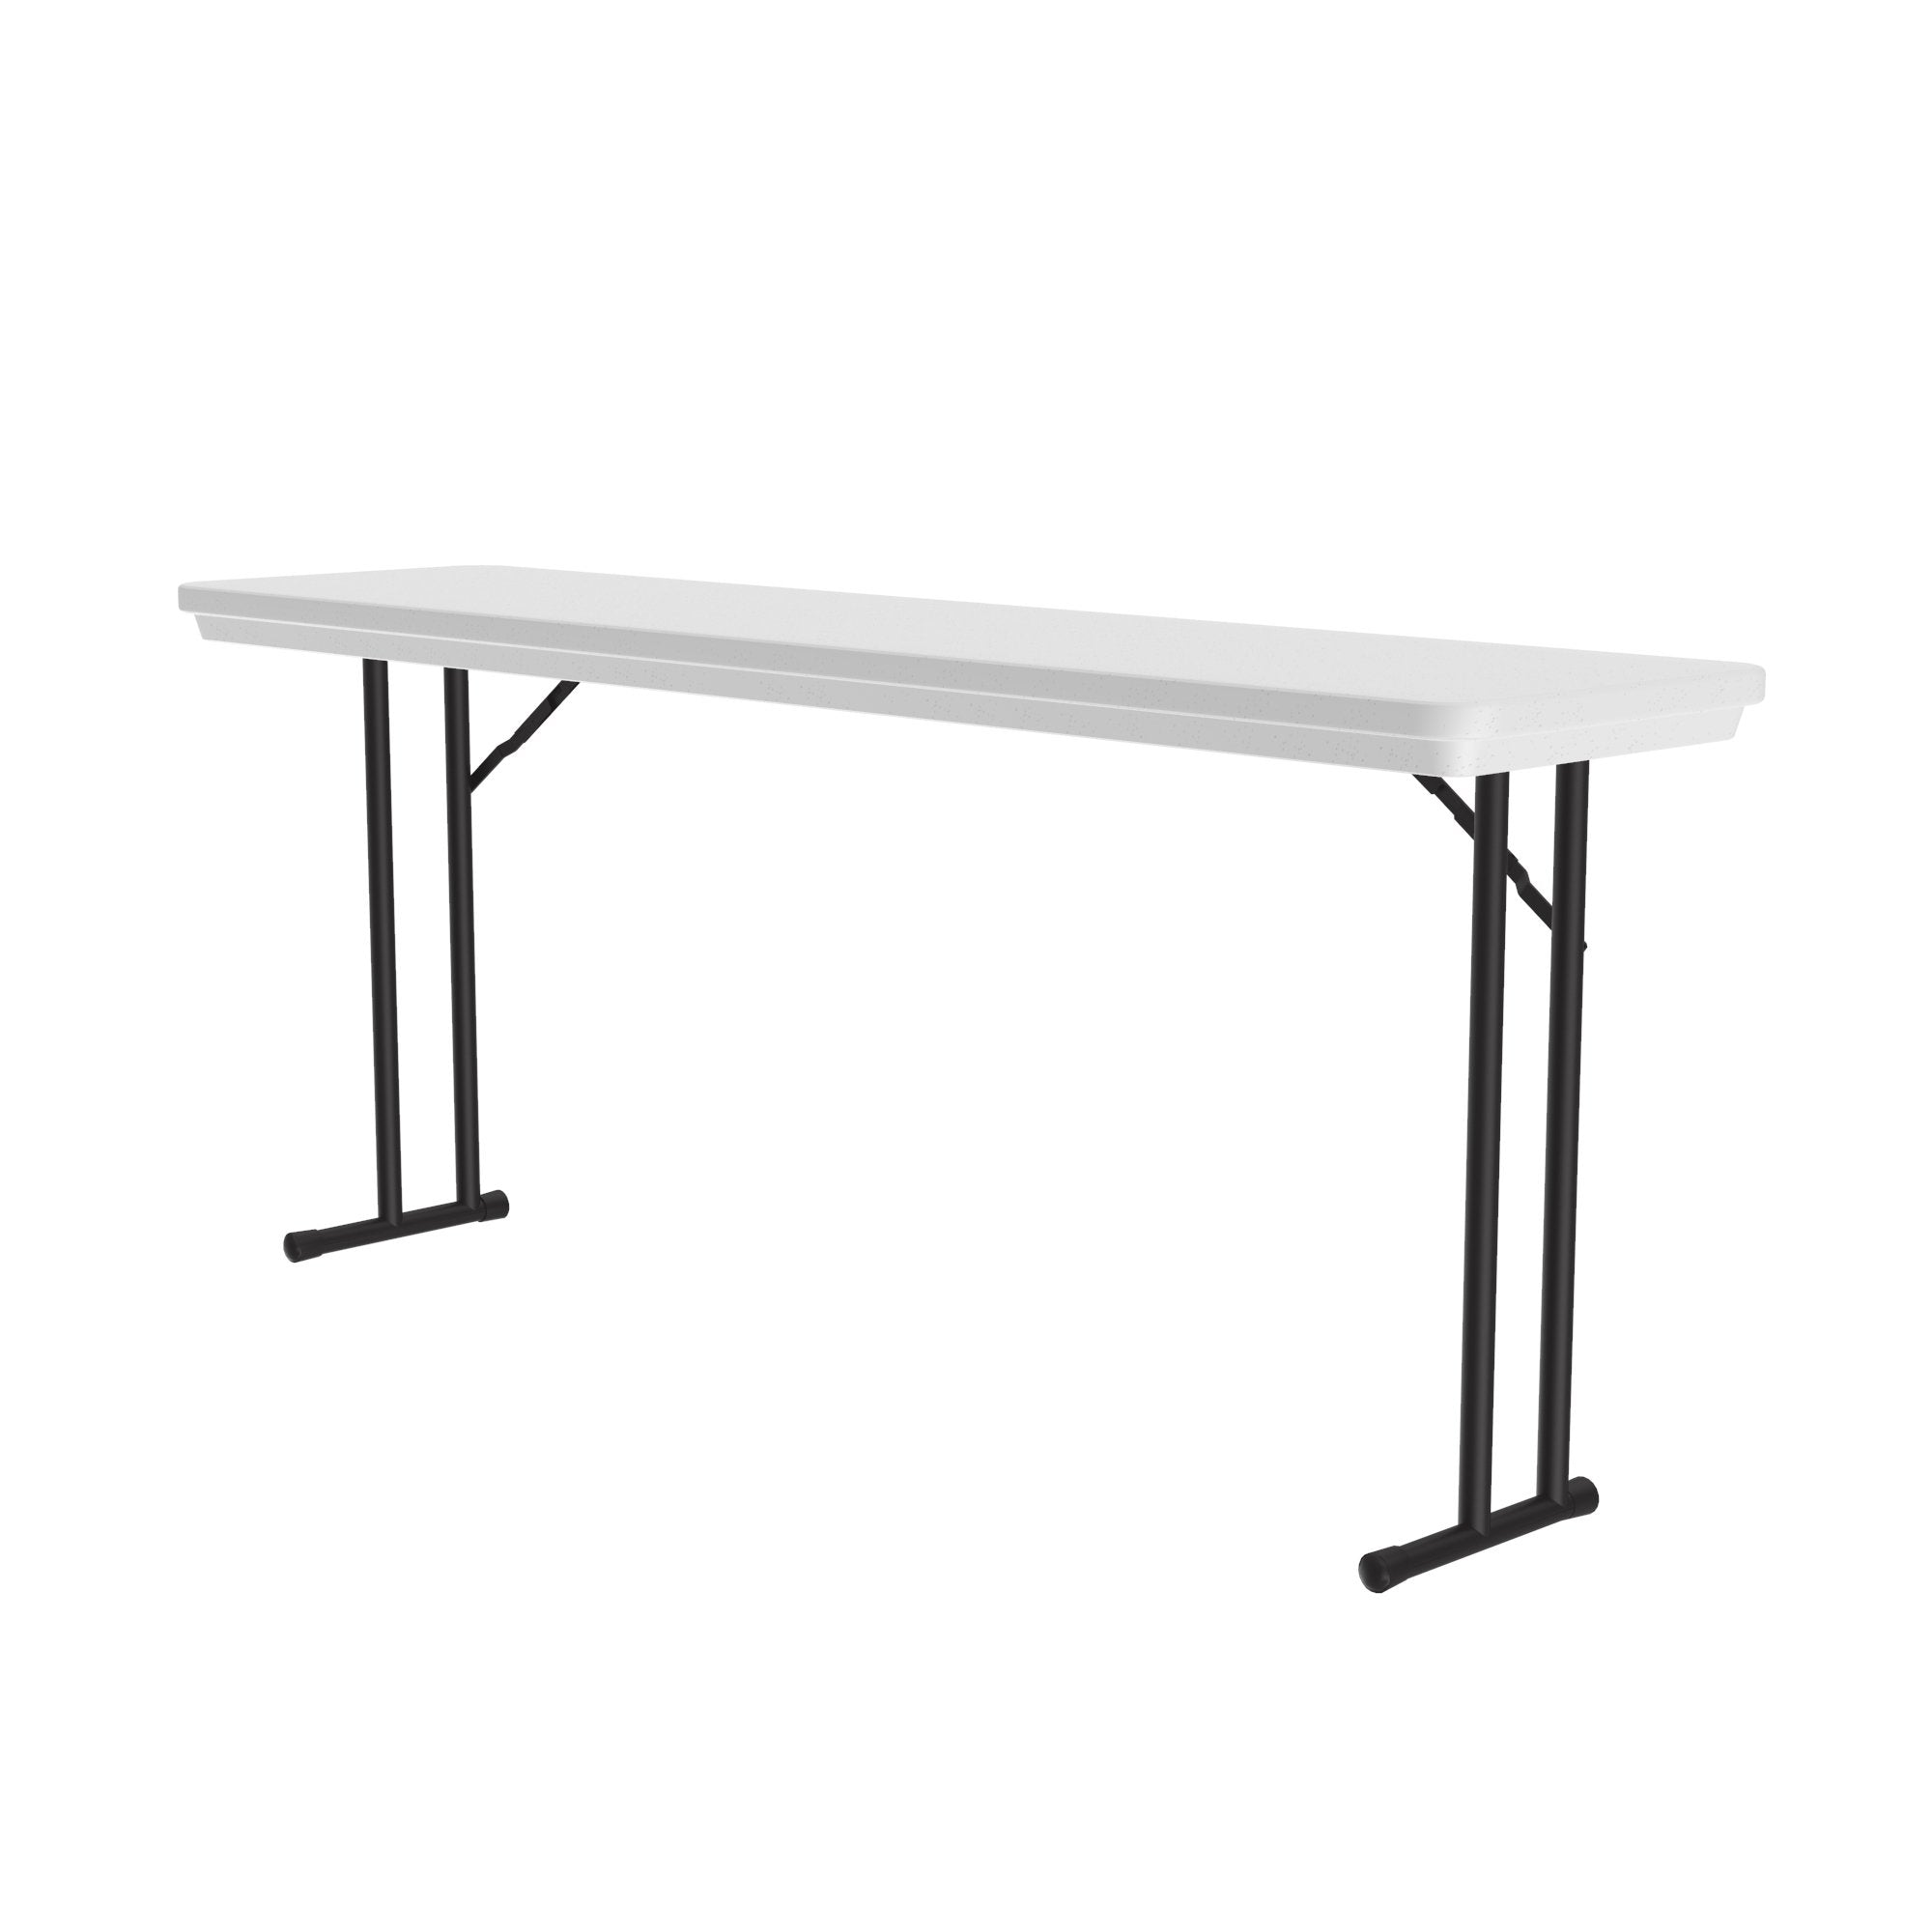 Heavy Duty Commercial Plastic Tamper Resistant Folding Tables